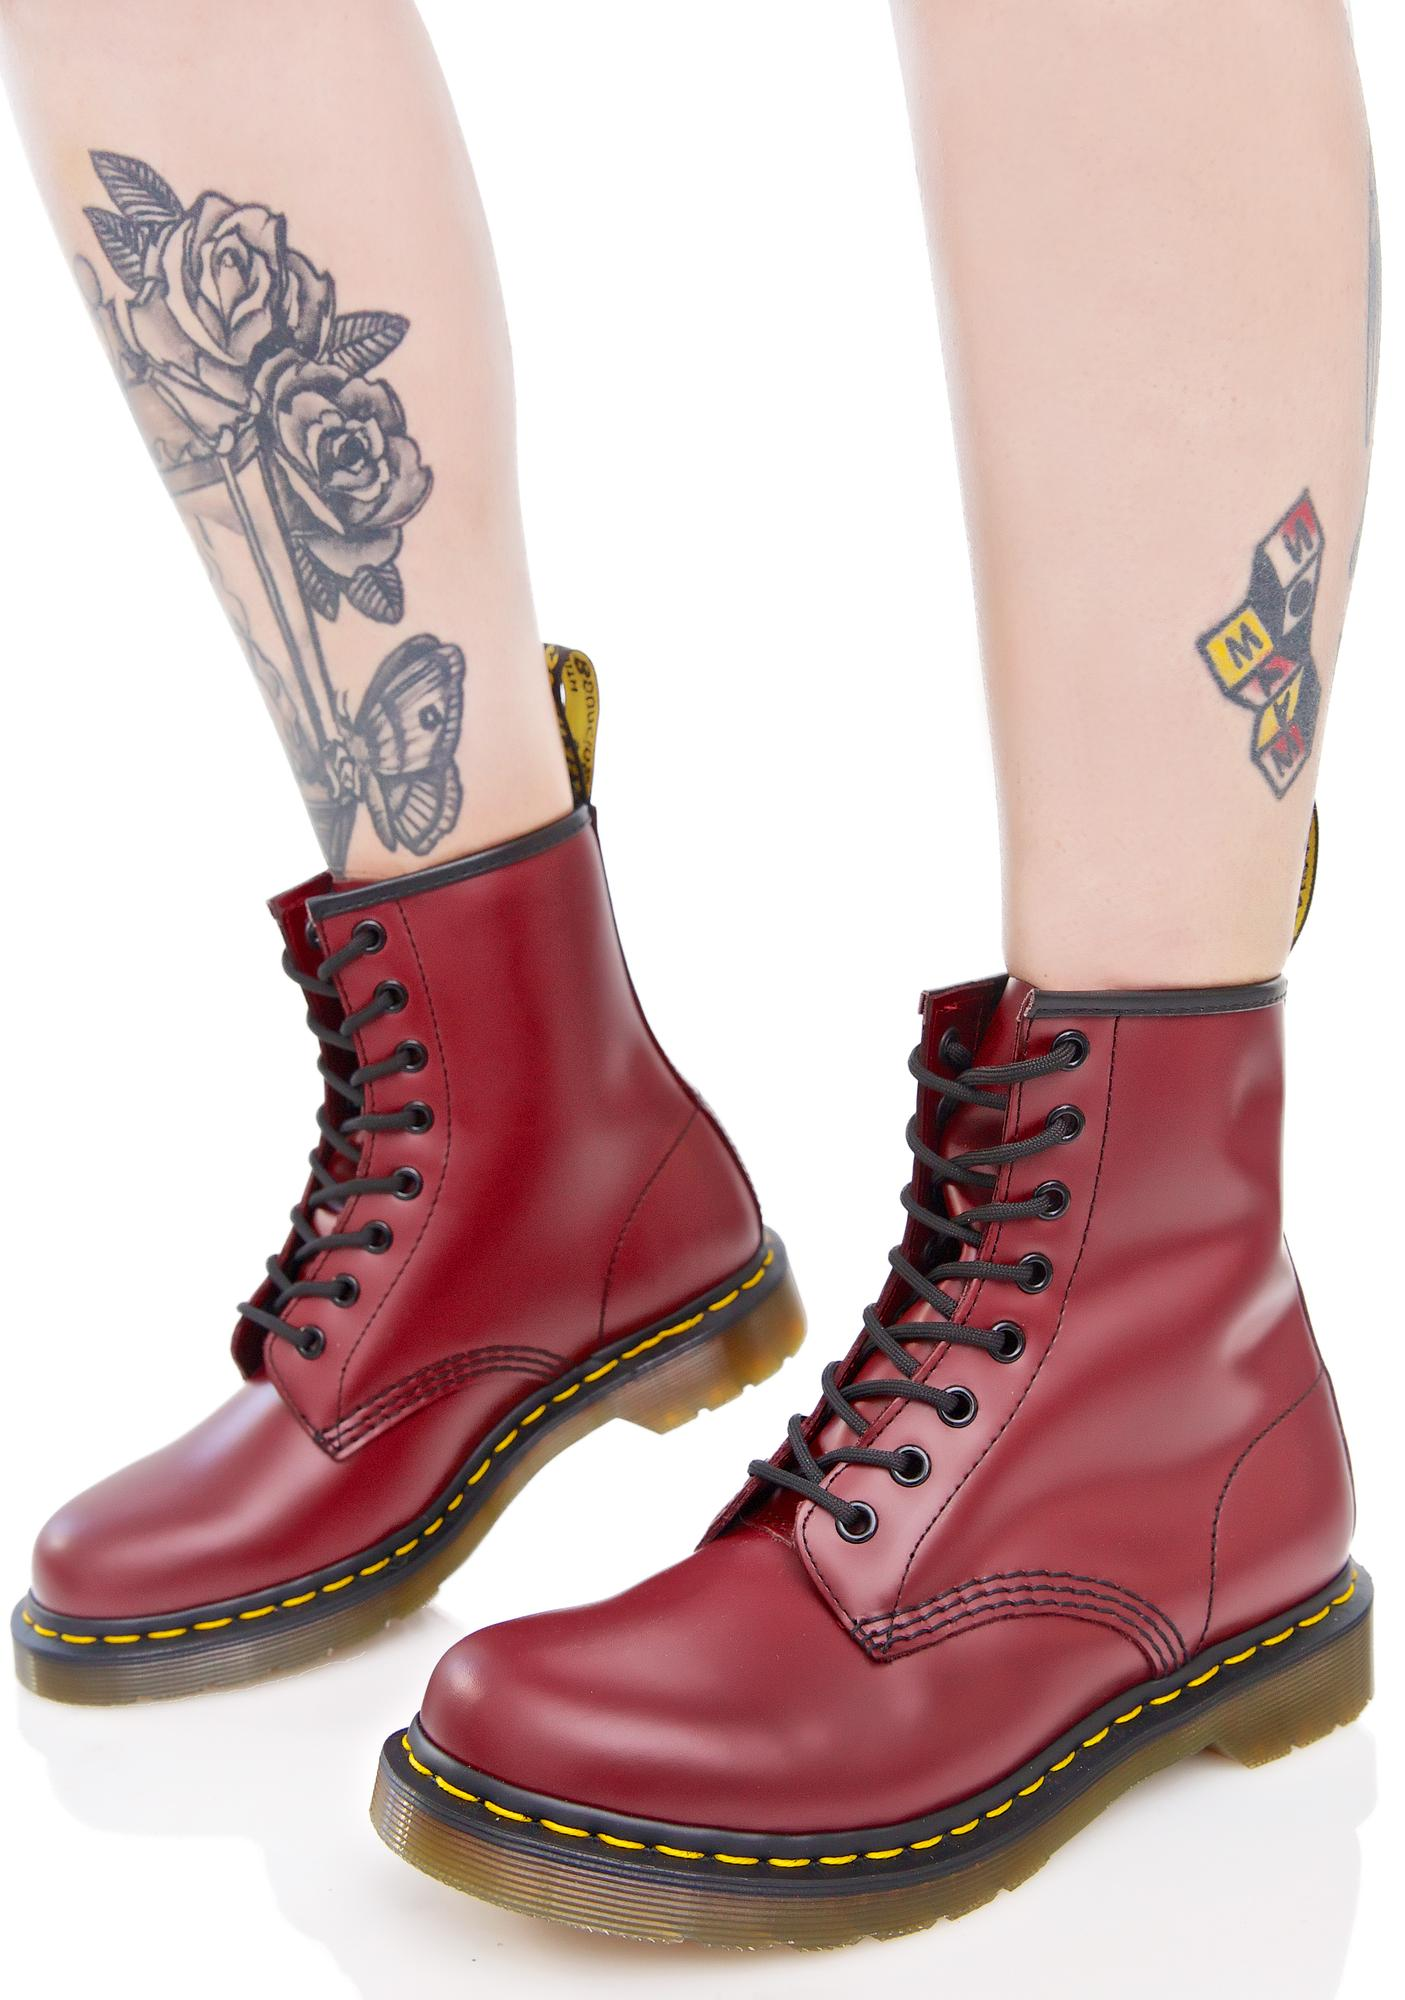 1be407b25286 Dr. Martens Cherry Red 1460 8 Eye Boots